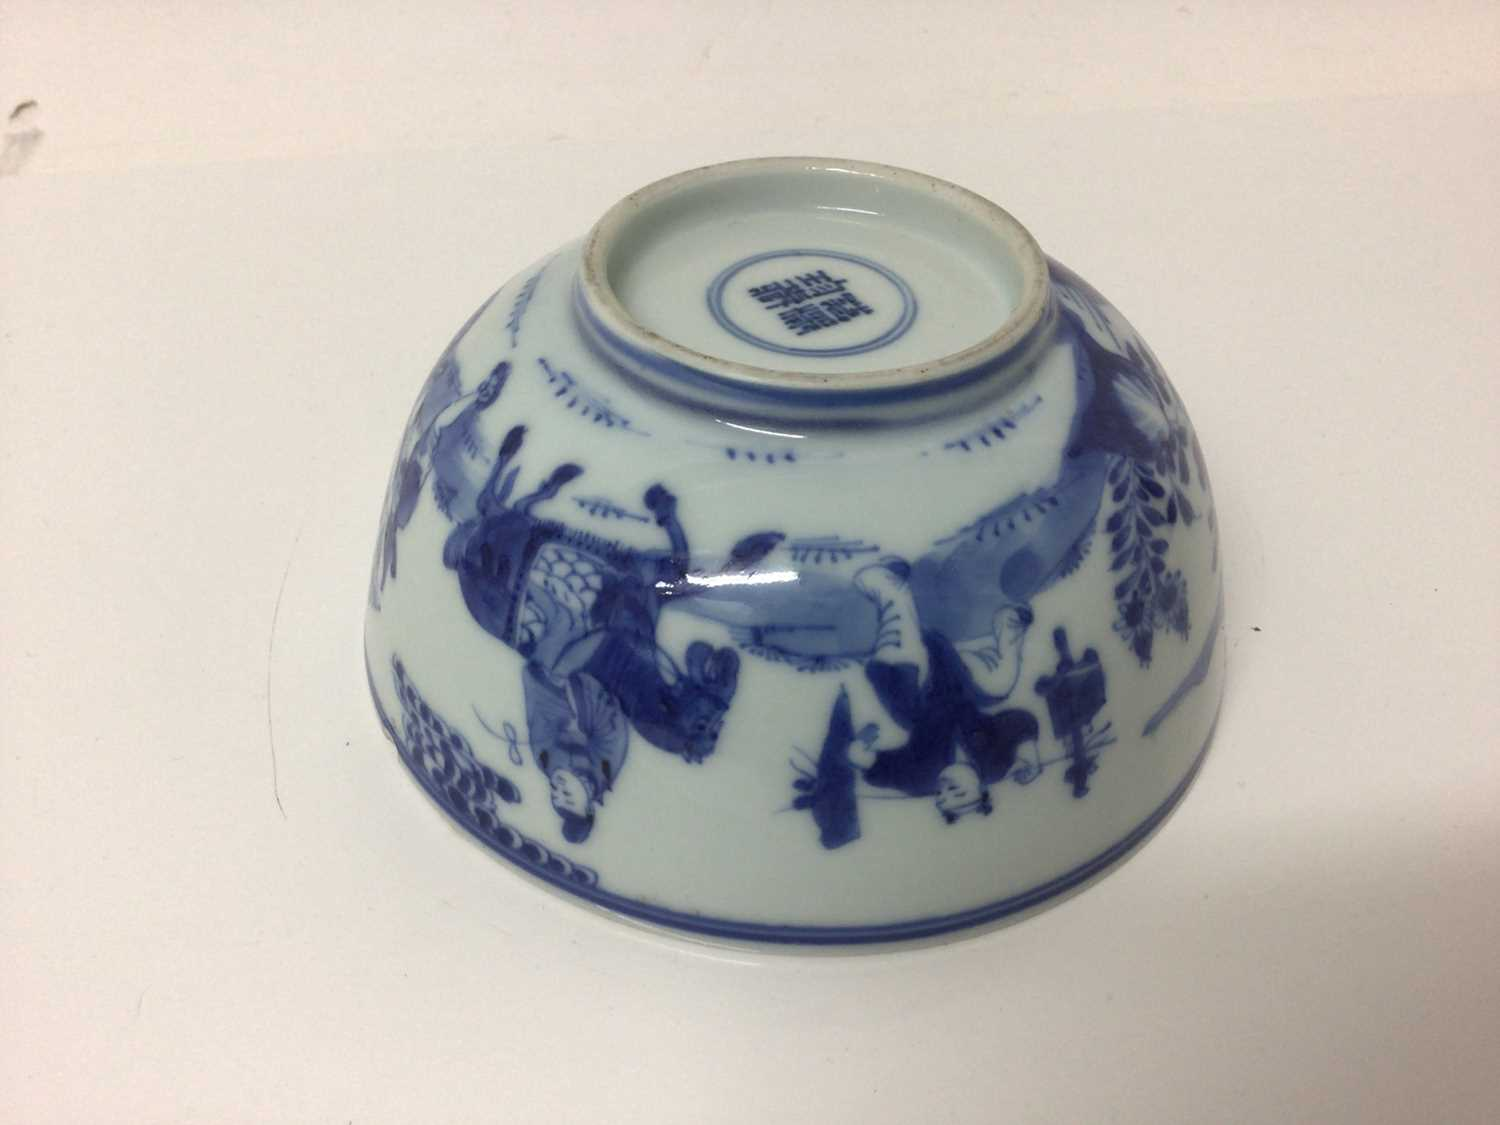 Chinese Kangxi porcelain jug and cover with later silver mount, together with a bowl (2) - Image 7 of 16